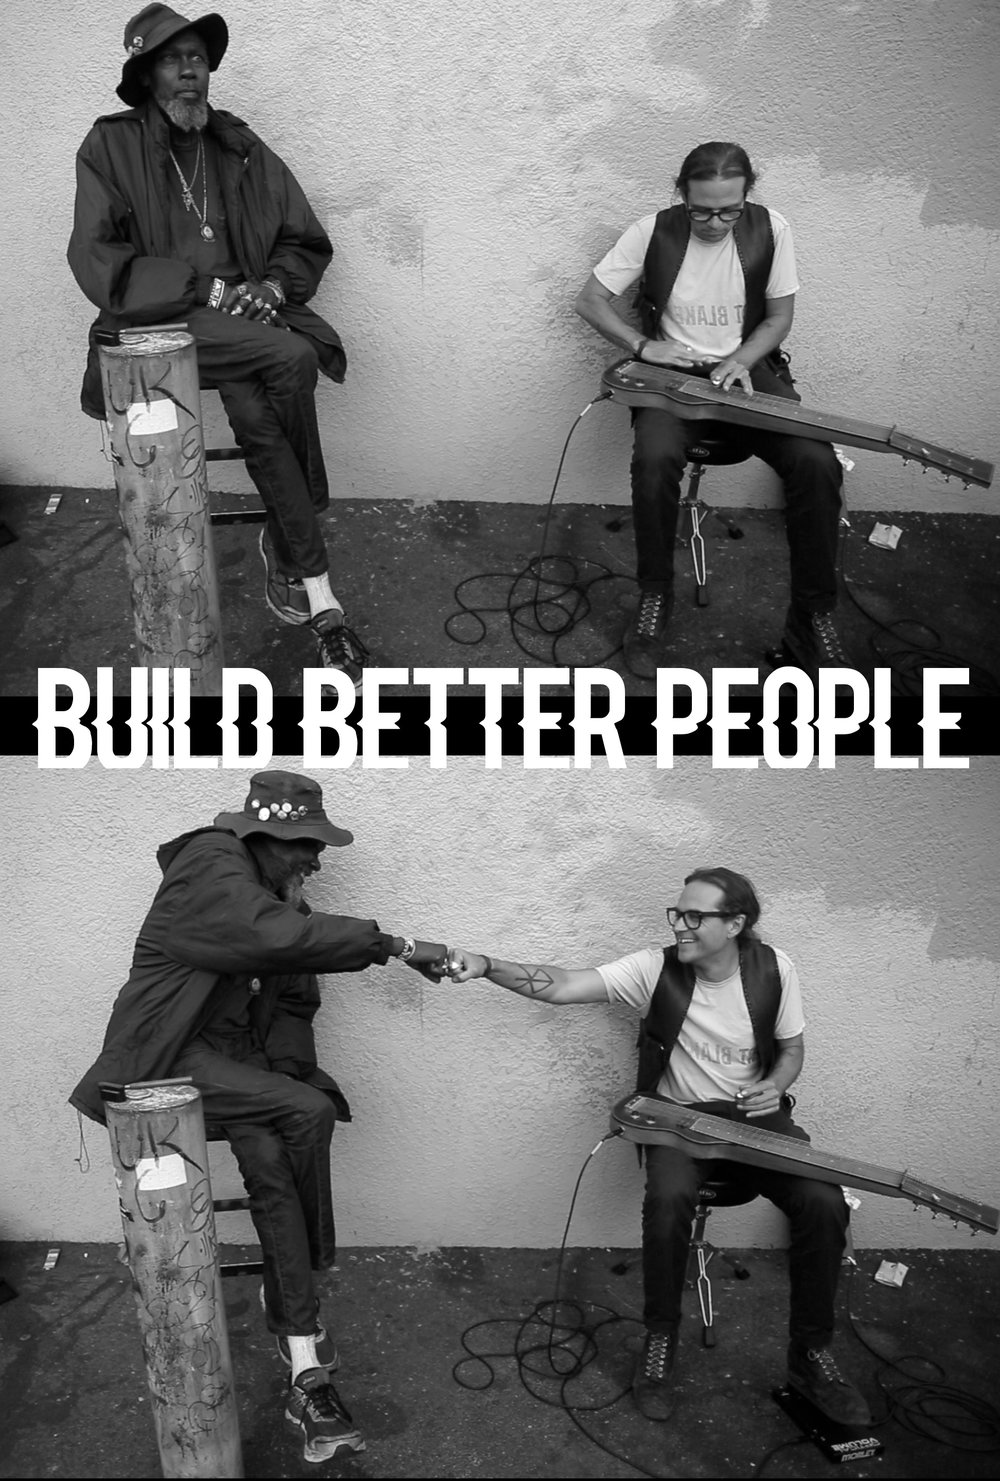 BUILD BETTER PEOPLE